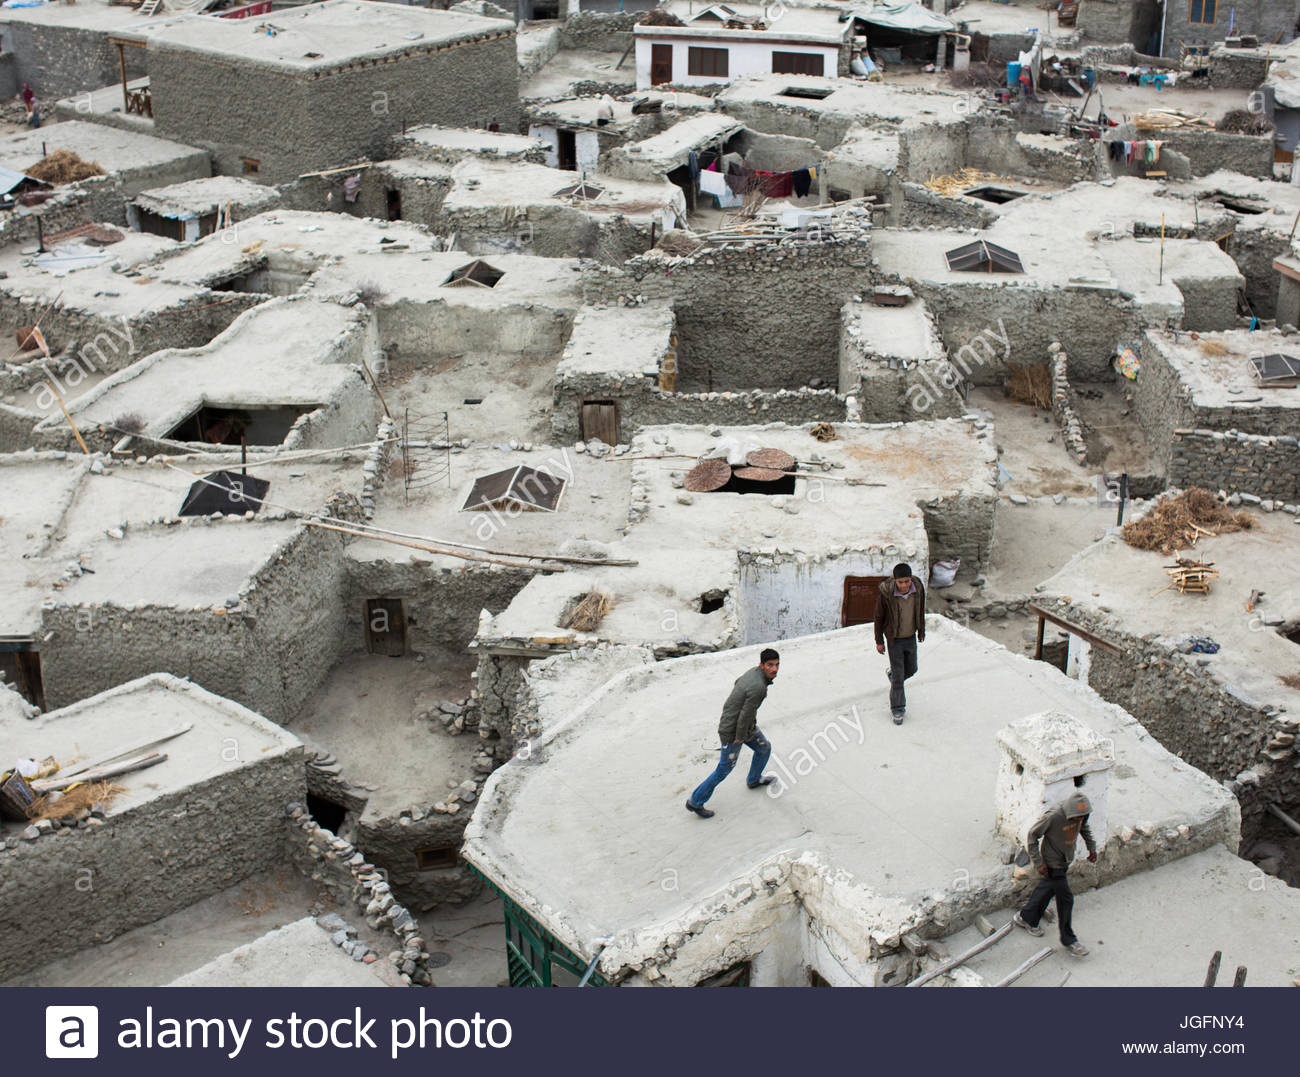 Teenager play on the roofs of houses in the village of Altit in the Hunza region. - Stock Image